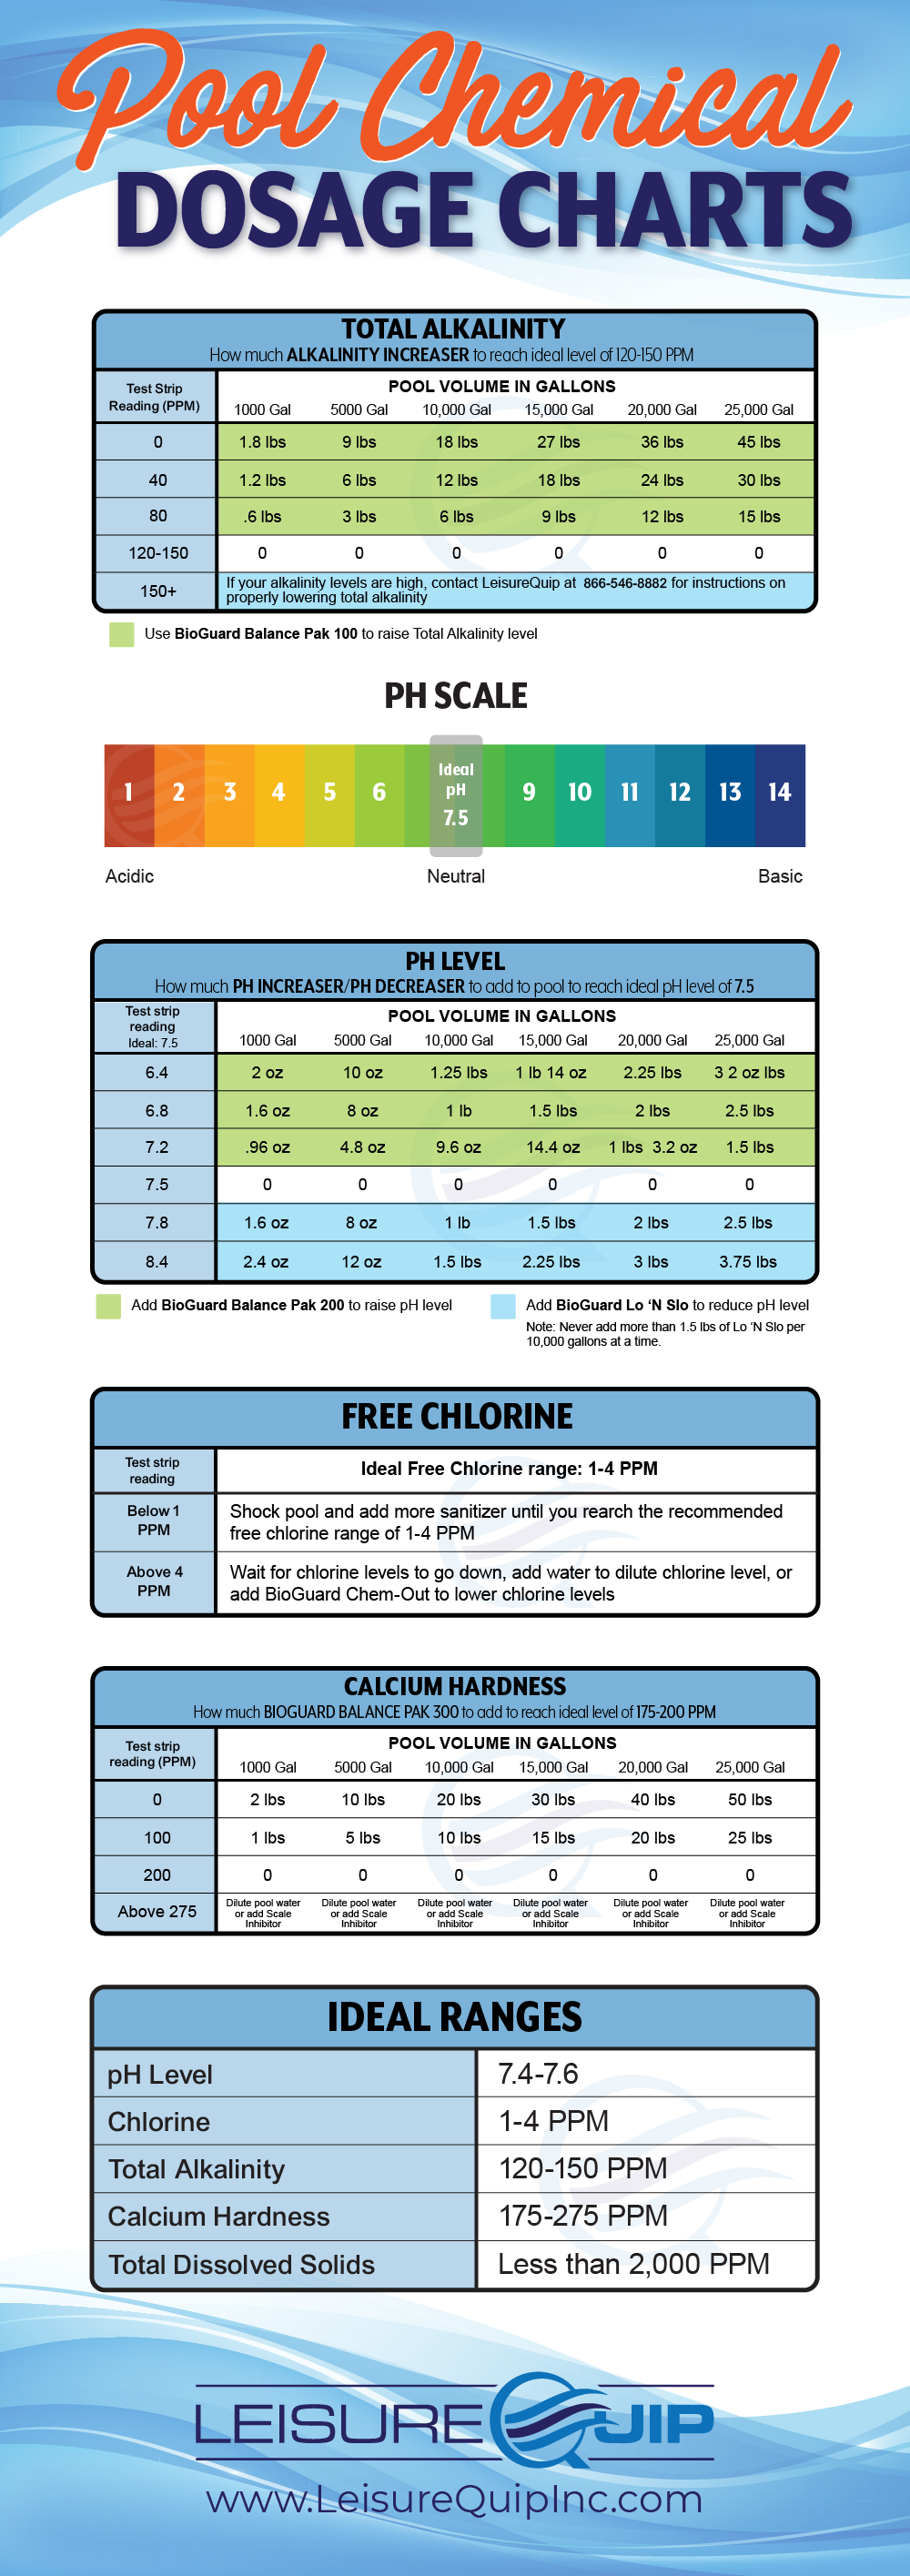 Swimming pool chemical dosage charts - maintenance guide